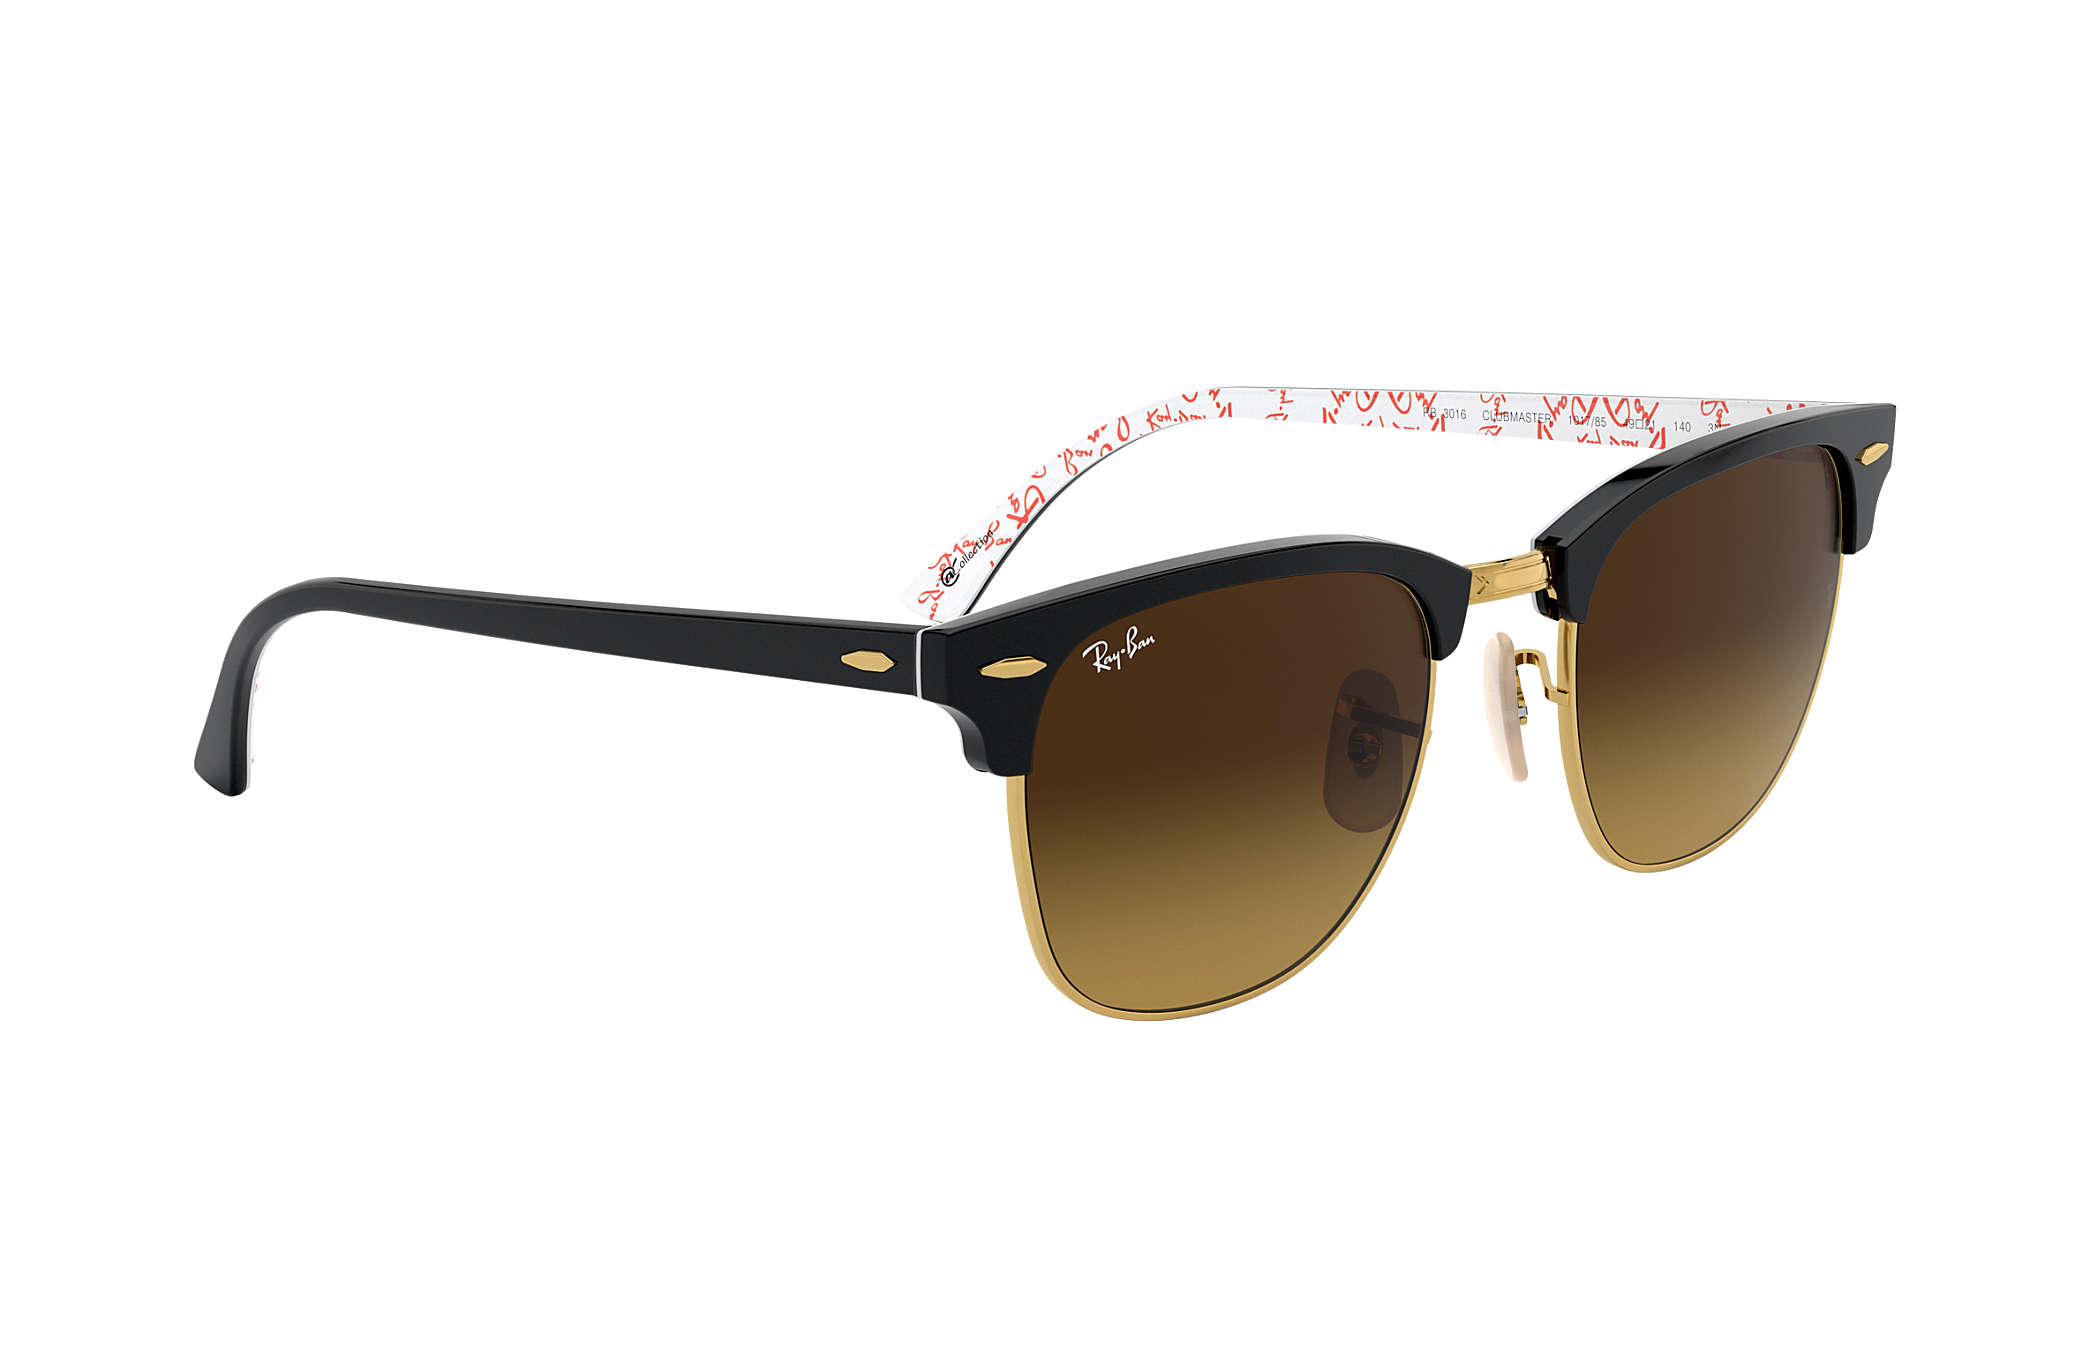 9eb3c29eab promo code for ray ban clubmaster rb3016 w0365 black green g15 unisex  sunglasses black gold d1aba 6533f  sale ray ban 0rb3016 clubmaster  collection black ...